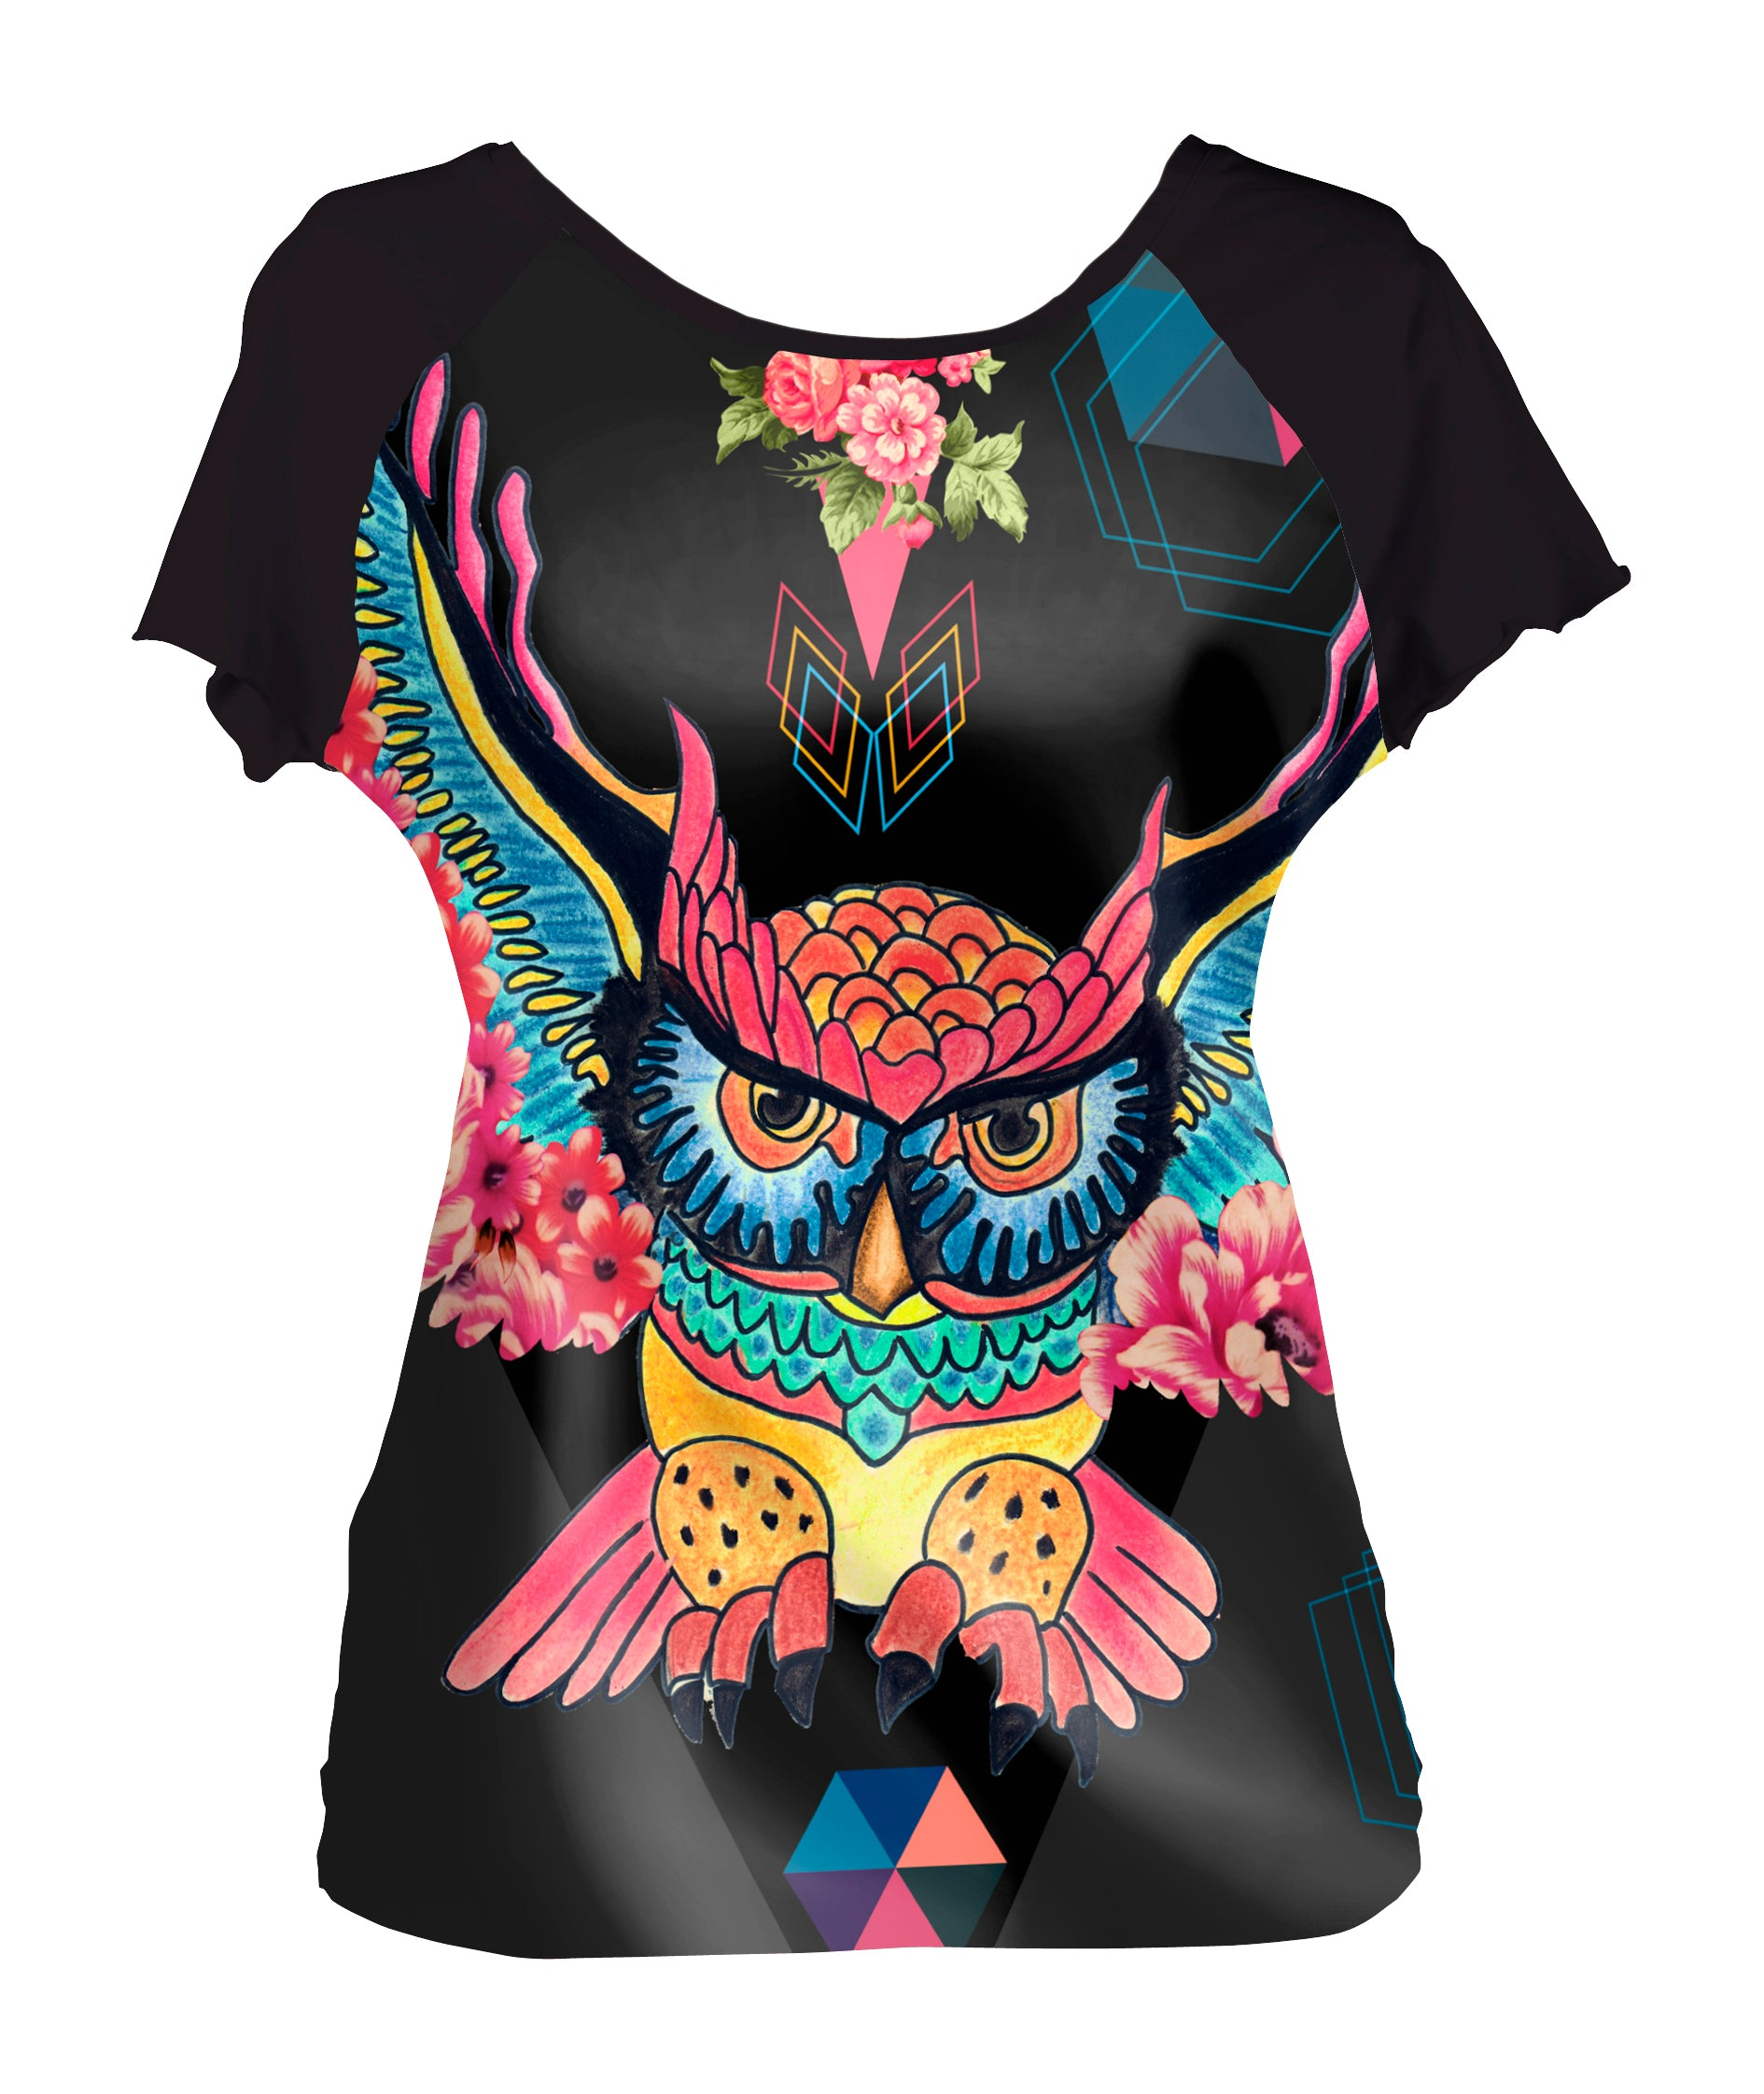 Tee-shirt Chouette Mexicaine